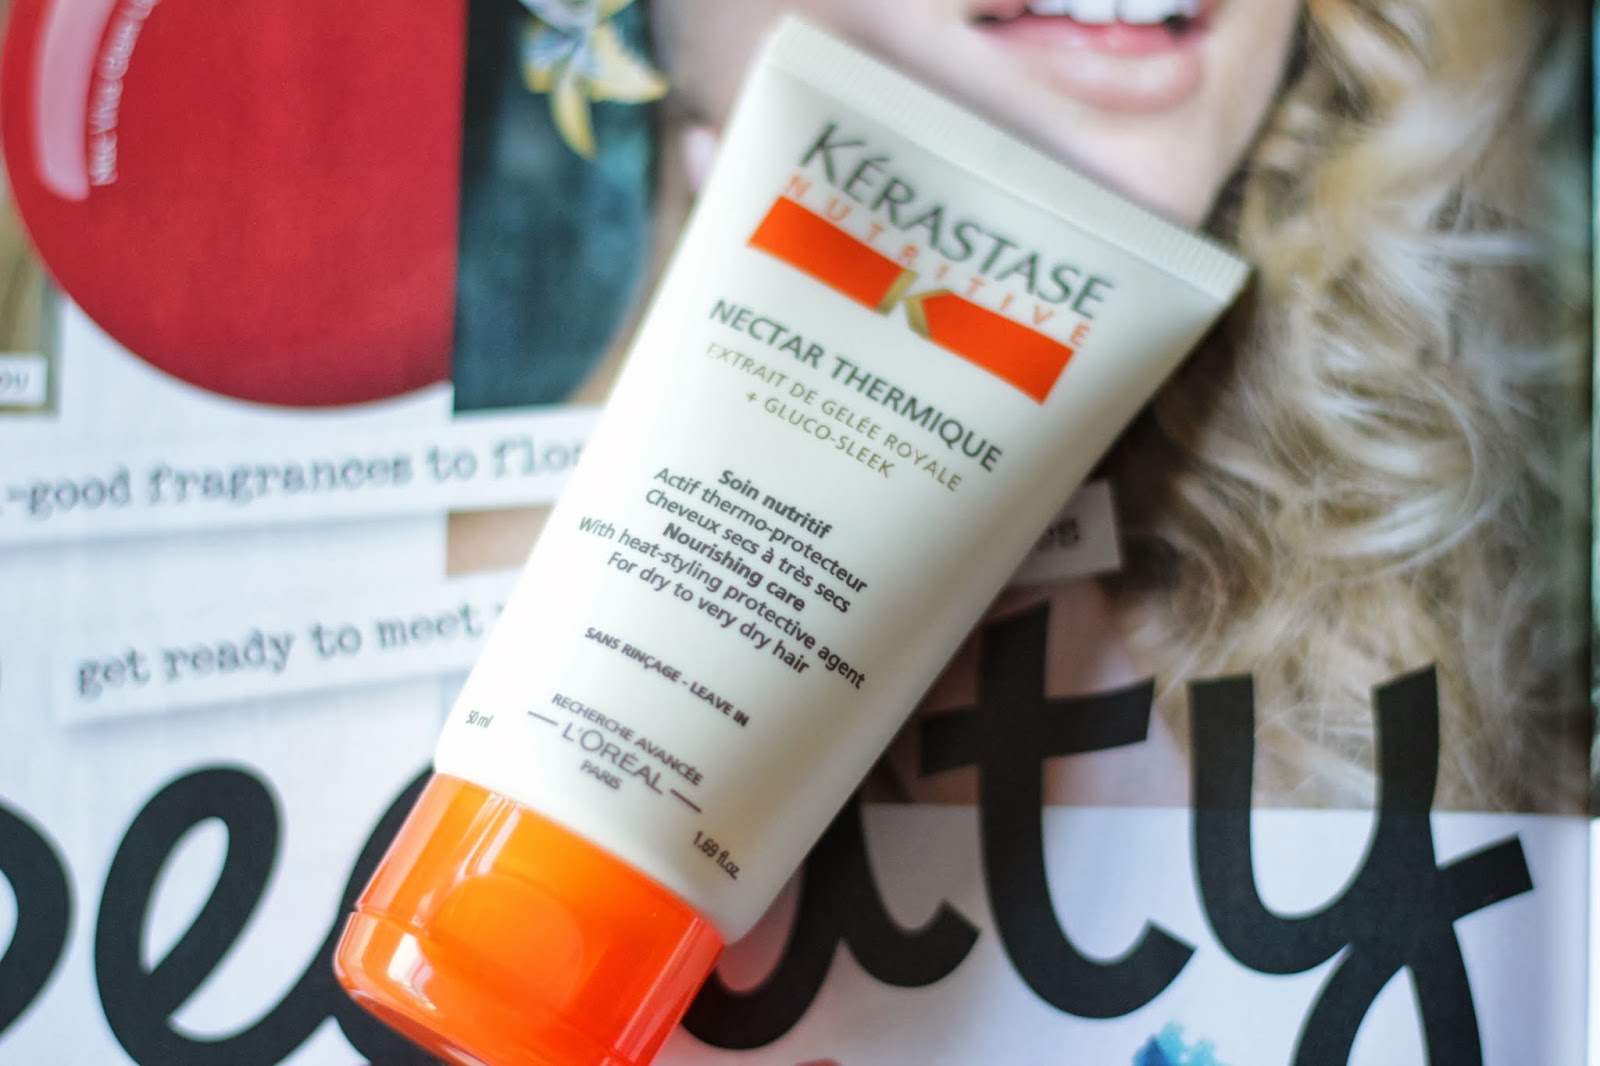 Kerastase Nectar Thermique Review